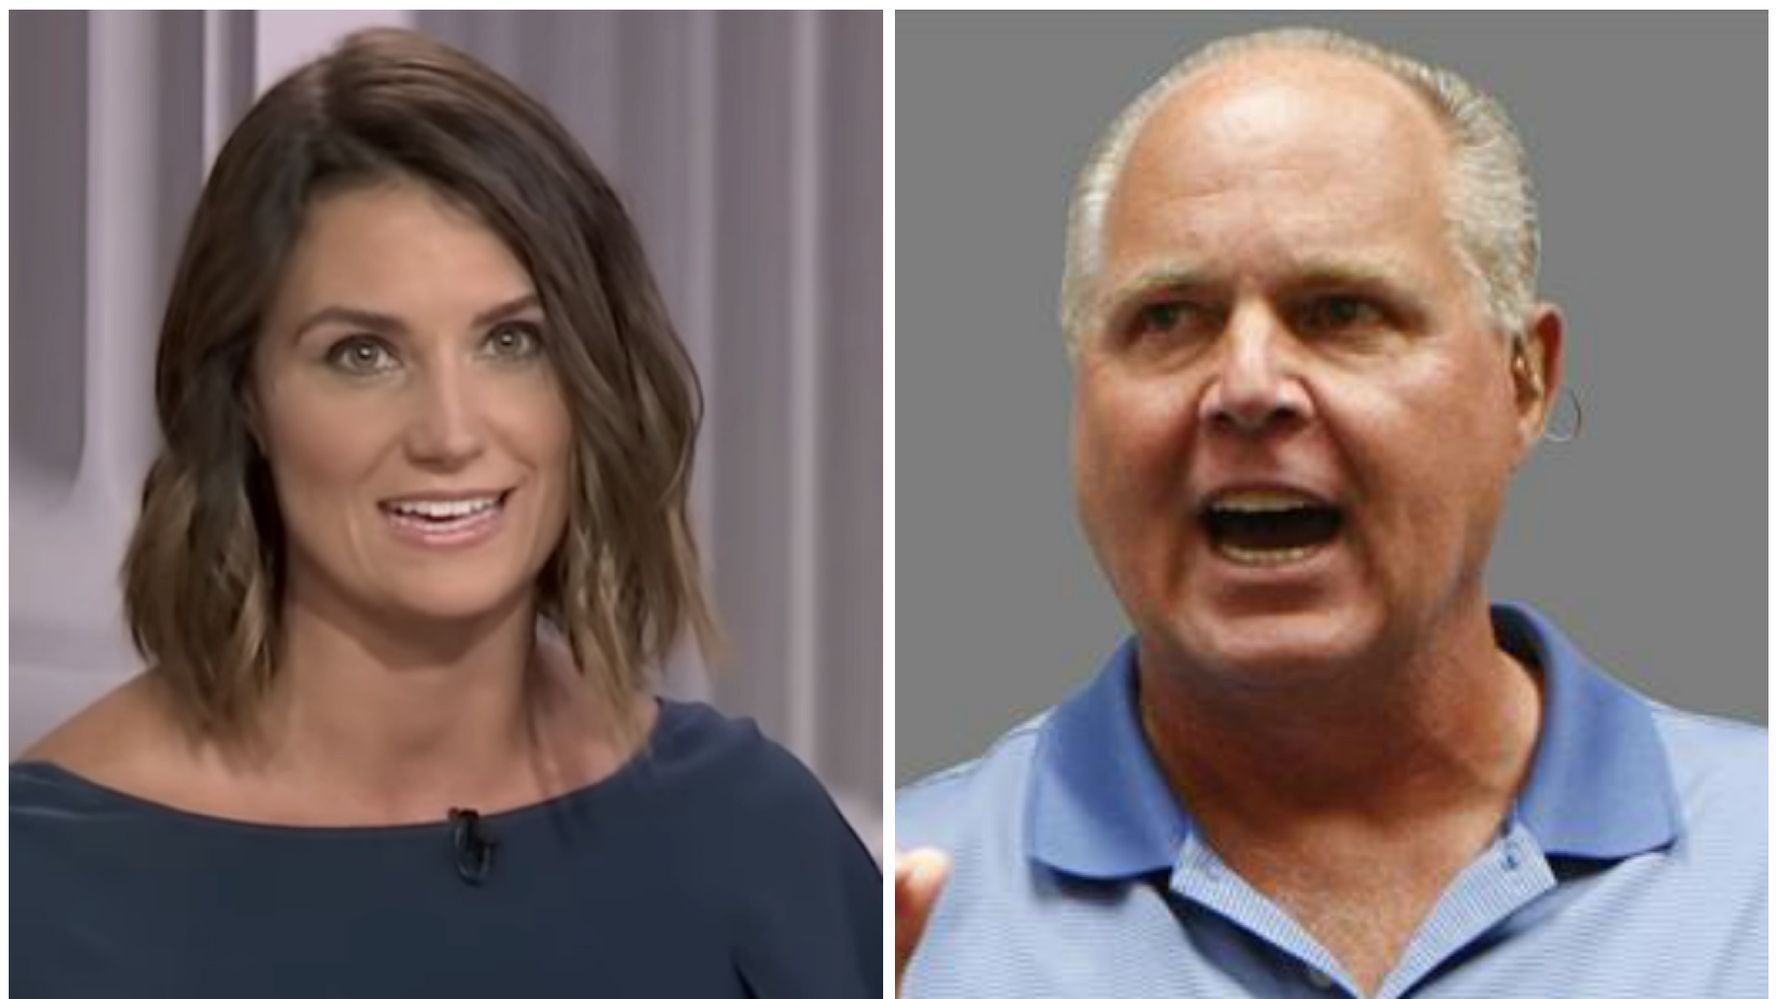 Westlake Legal Group 5d7a7d453b0000c49fd19d91 News Anchor Slams Rush Limbaugh For 'Slut Shaming,' Accusing Her Of Posing Nude At 14